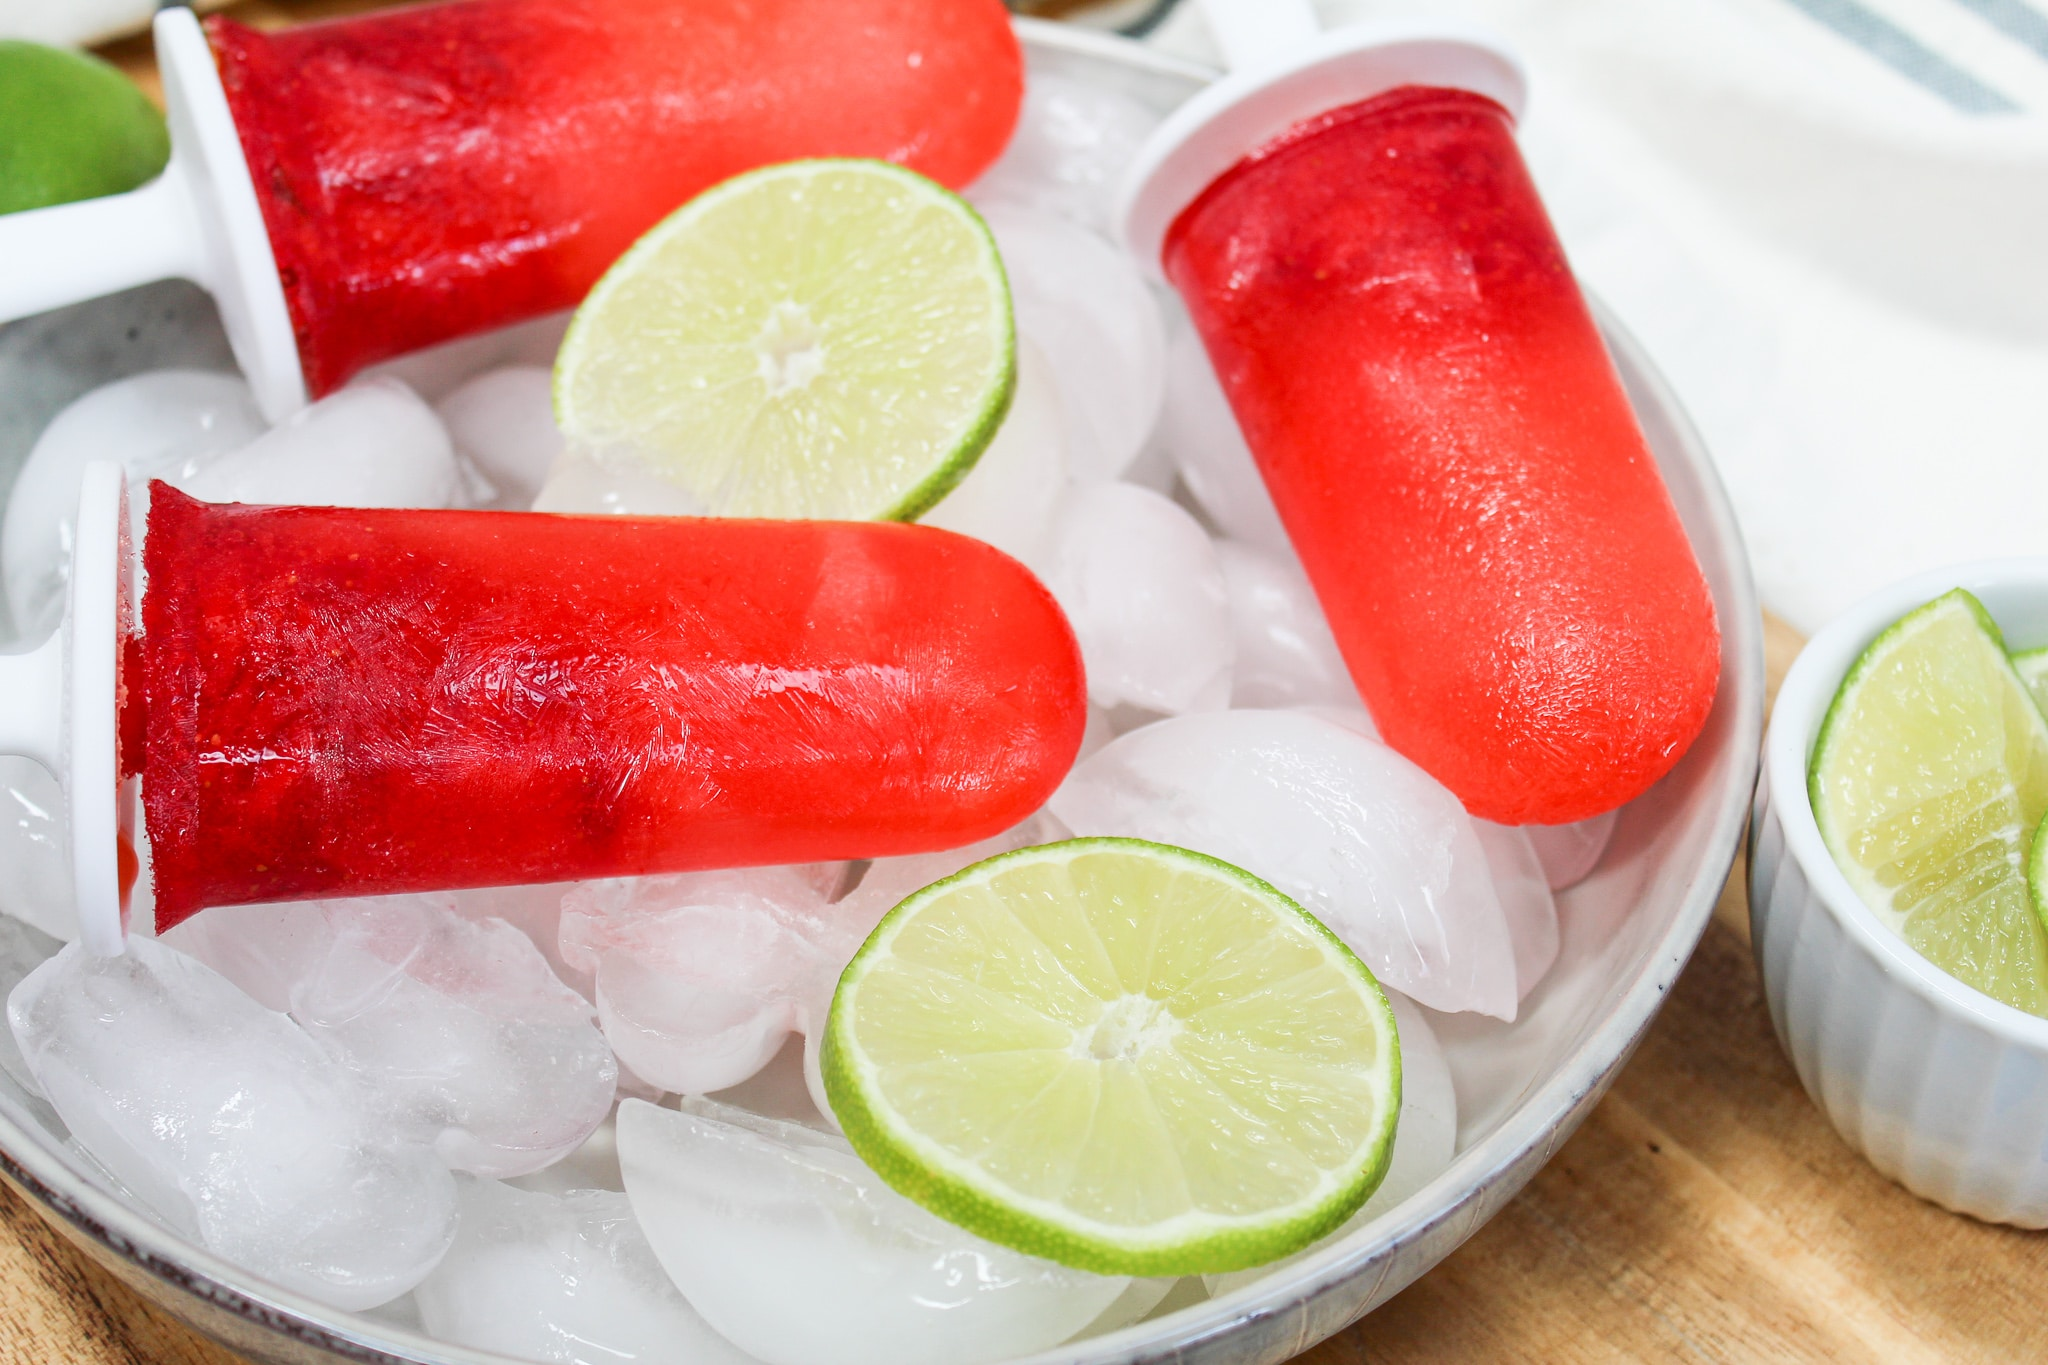 Strawberry Margarita Popsicle over ice with limes